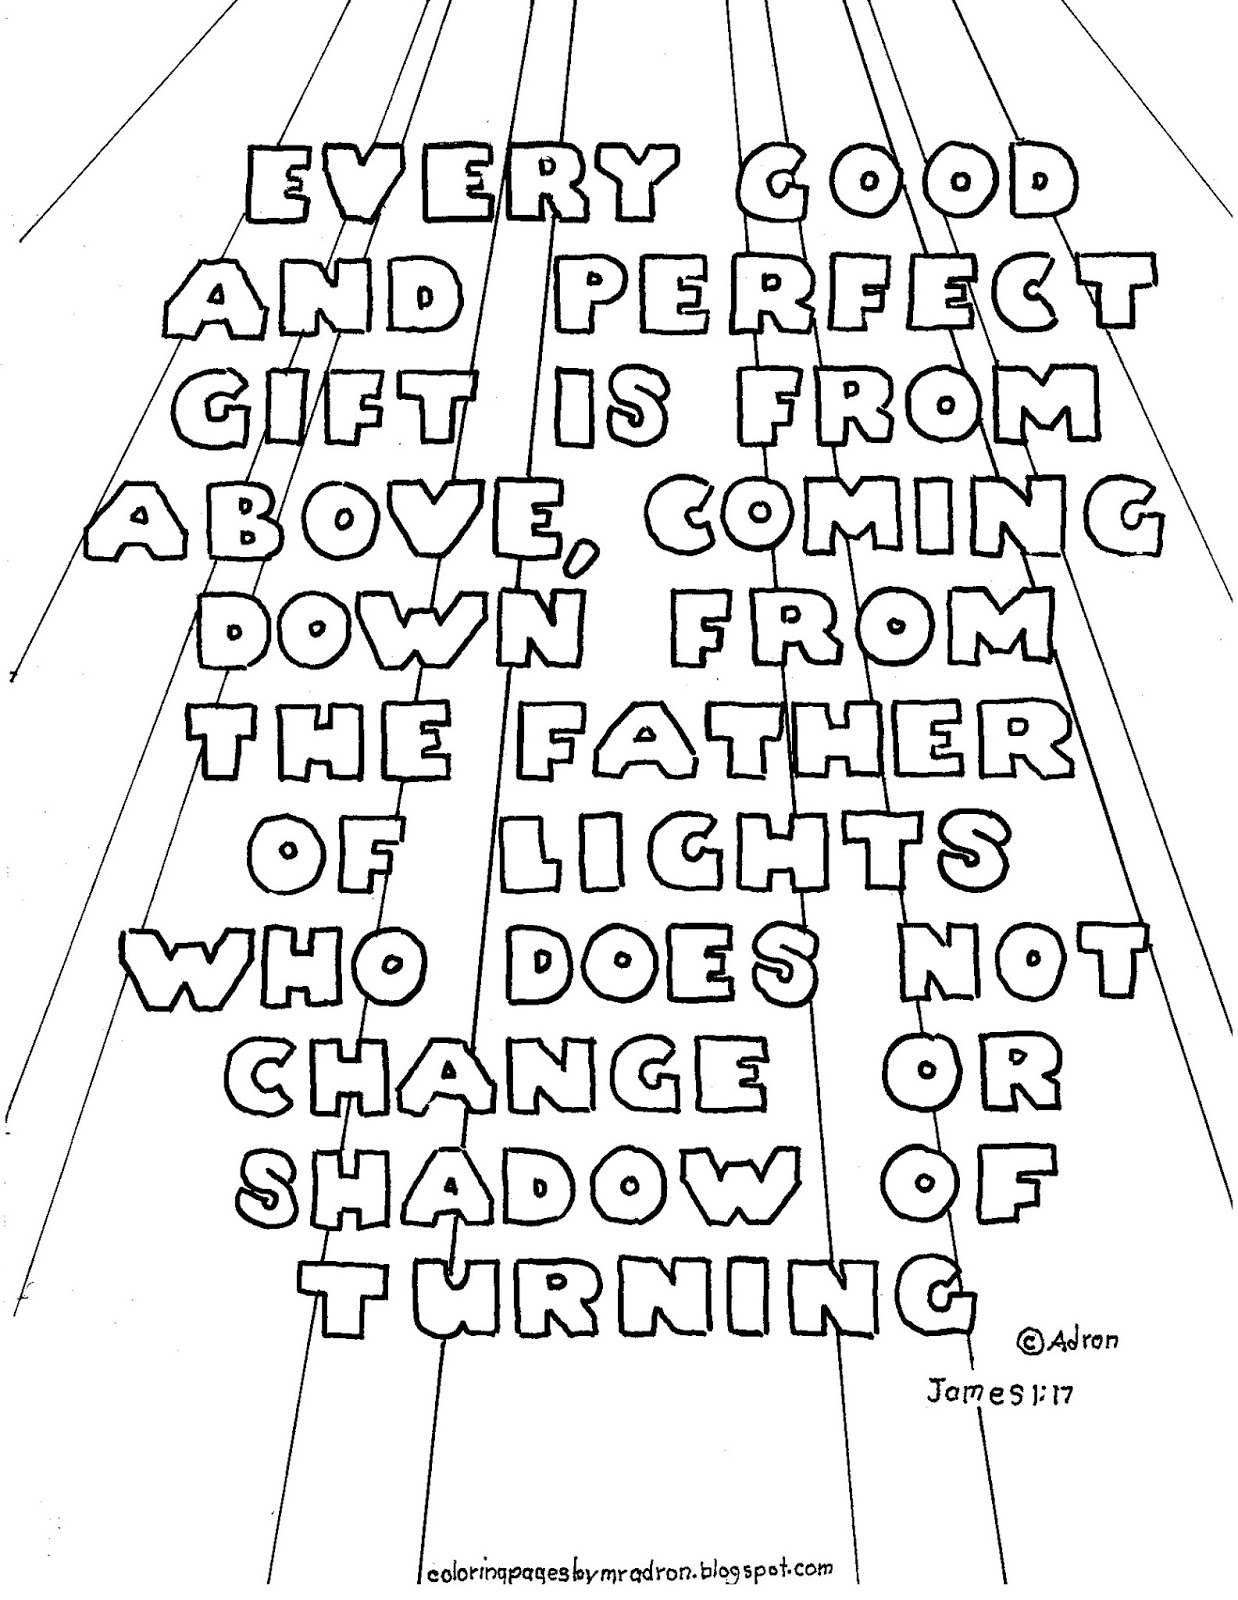 Coloring Pages For Kids By Mr Adron Printable Bible Verse Coloring Page James 1 17 Every Good